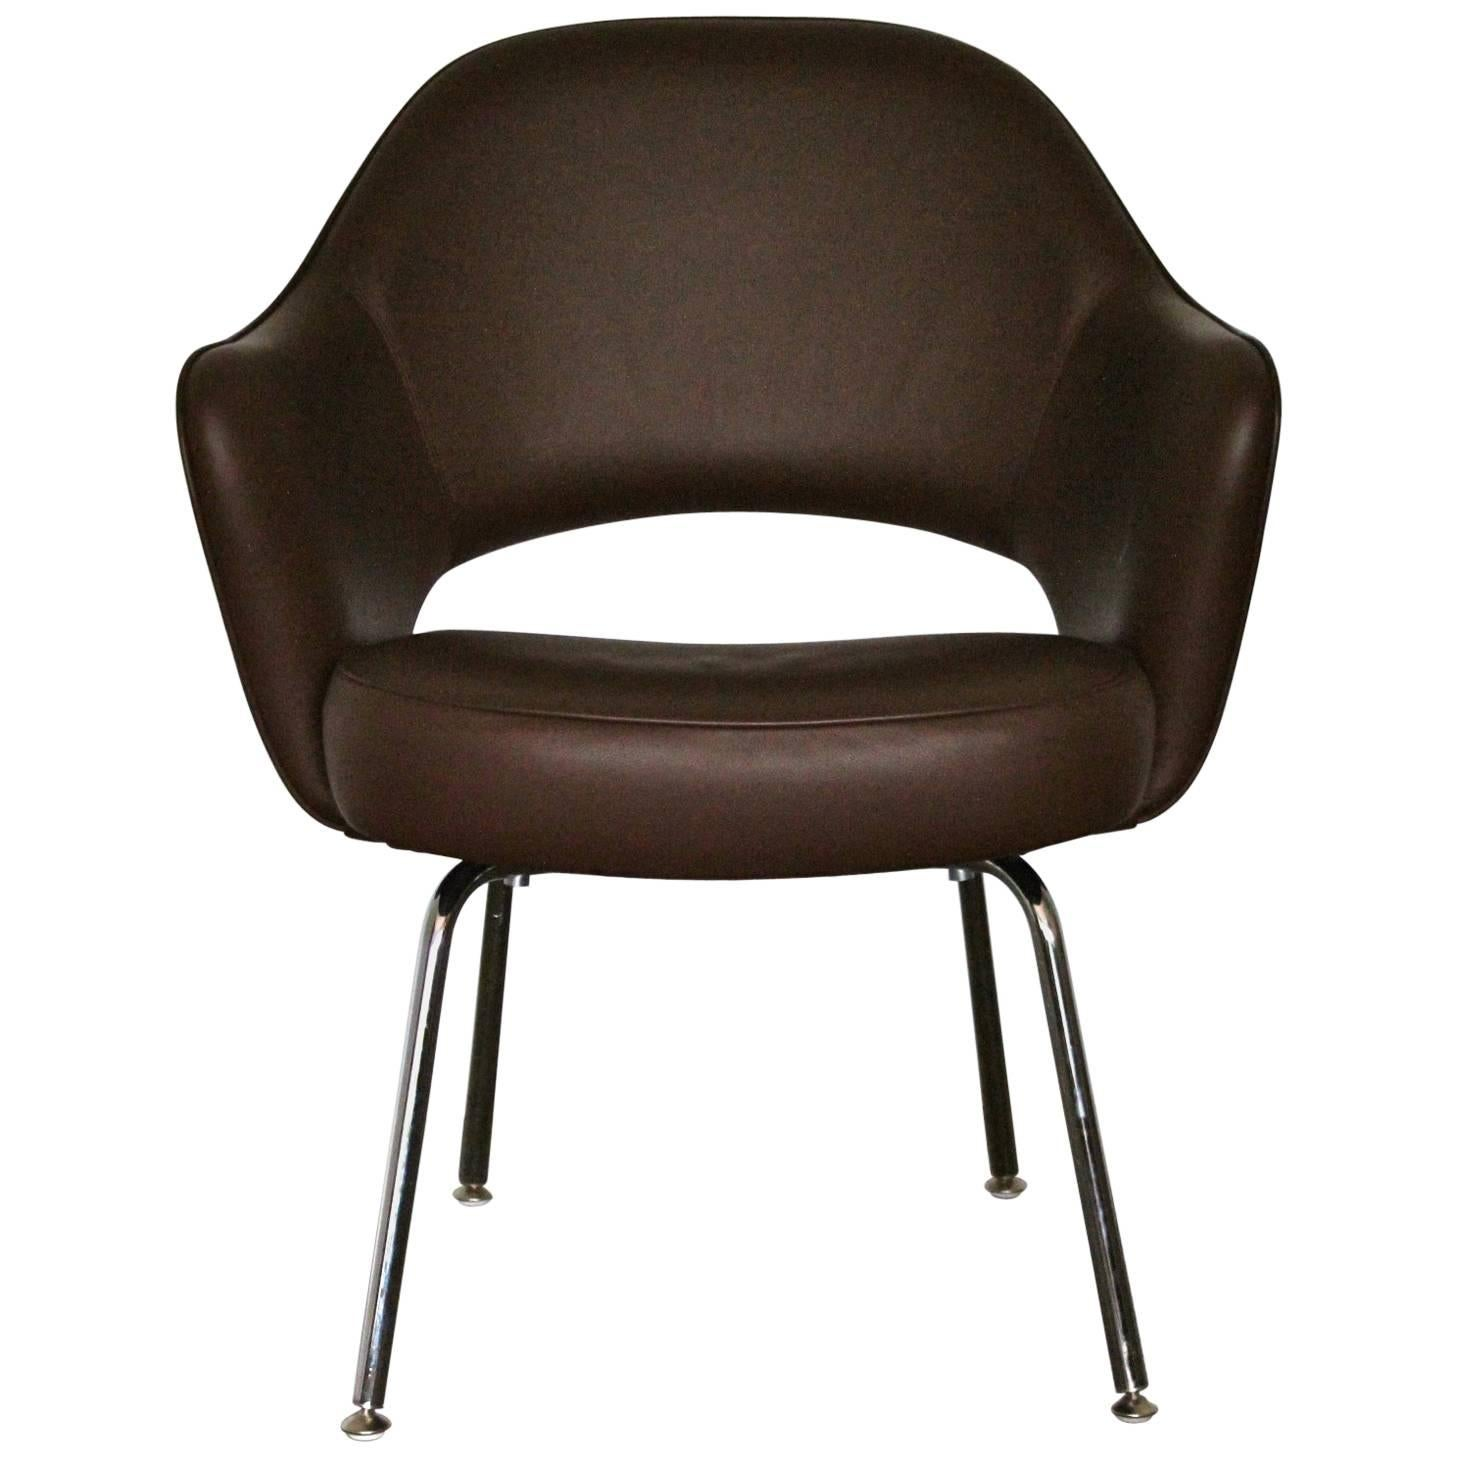 Knoll Studio U201cSaarinen Executiveu201d Armchair In U201cVolou201d Brown Leather For Sale